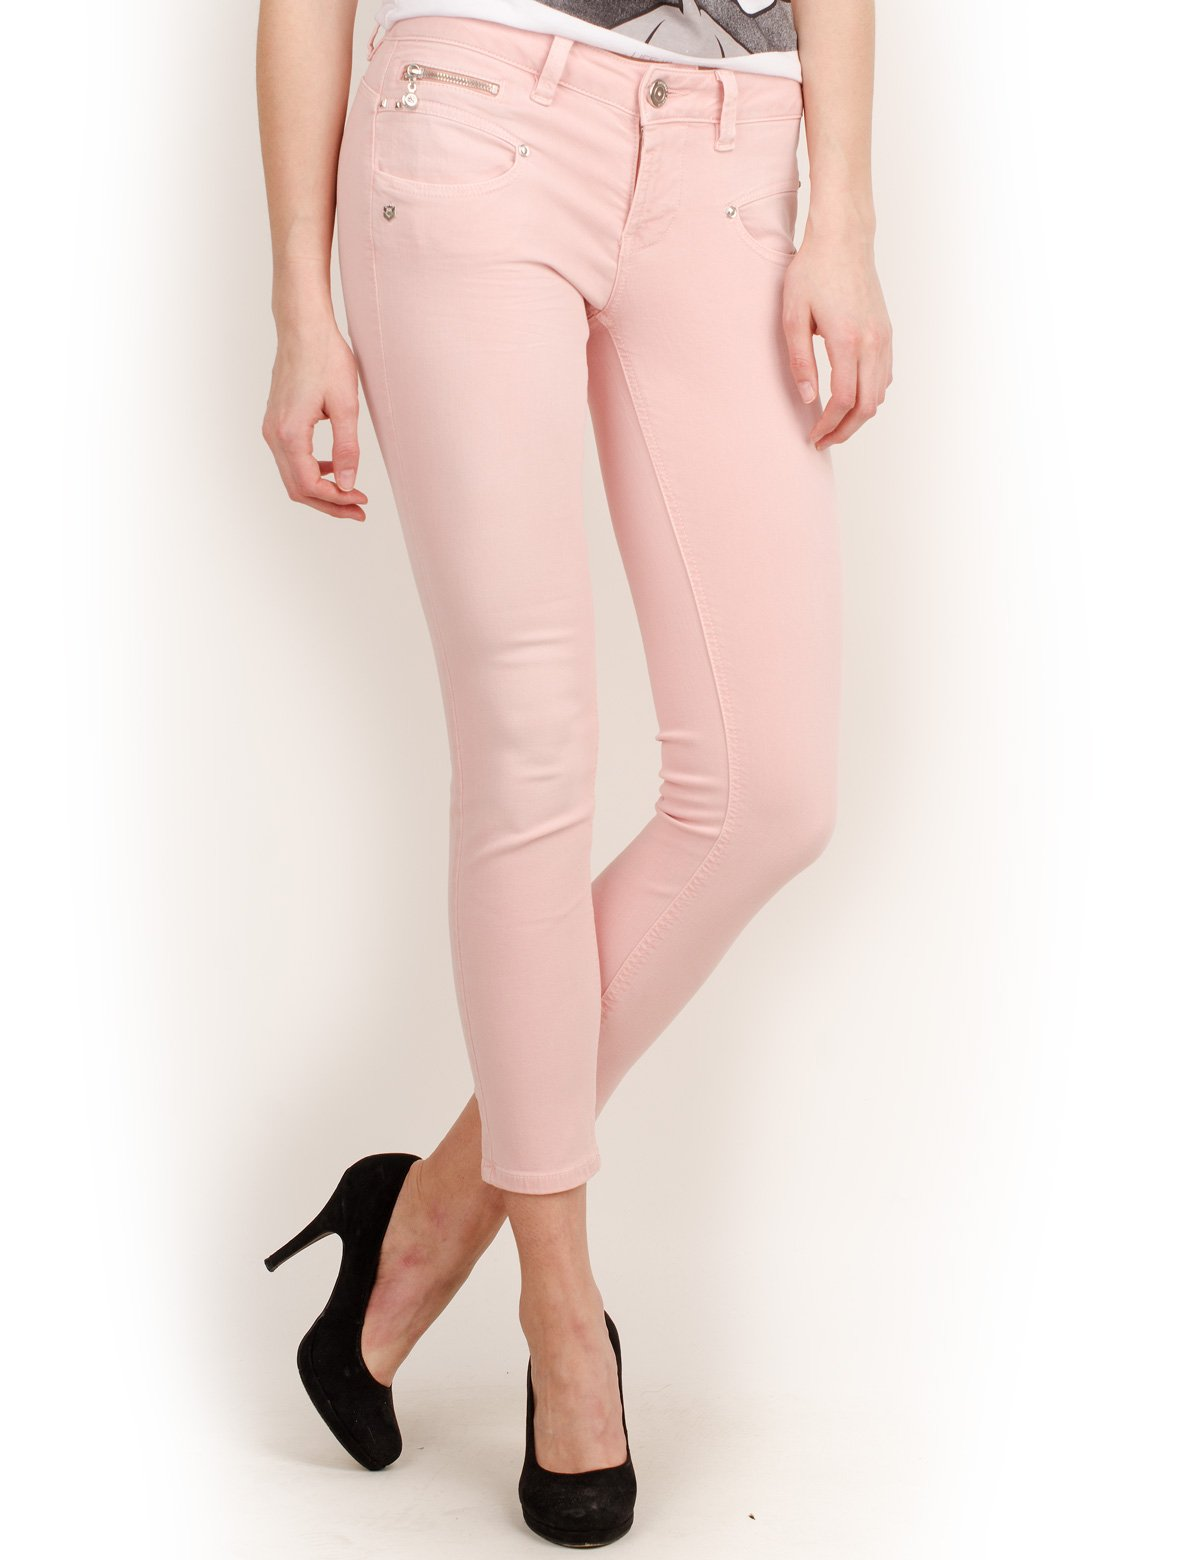 Freeman Cropped Color FabricantLFemme T PantalonRosepeachskinW30taille Magic Alexa porter Nnv8Owm0